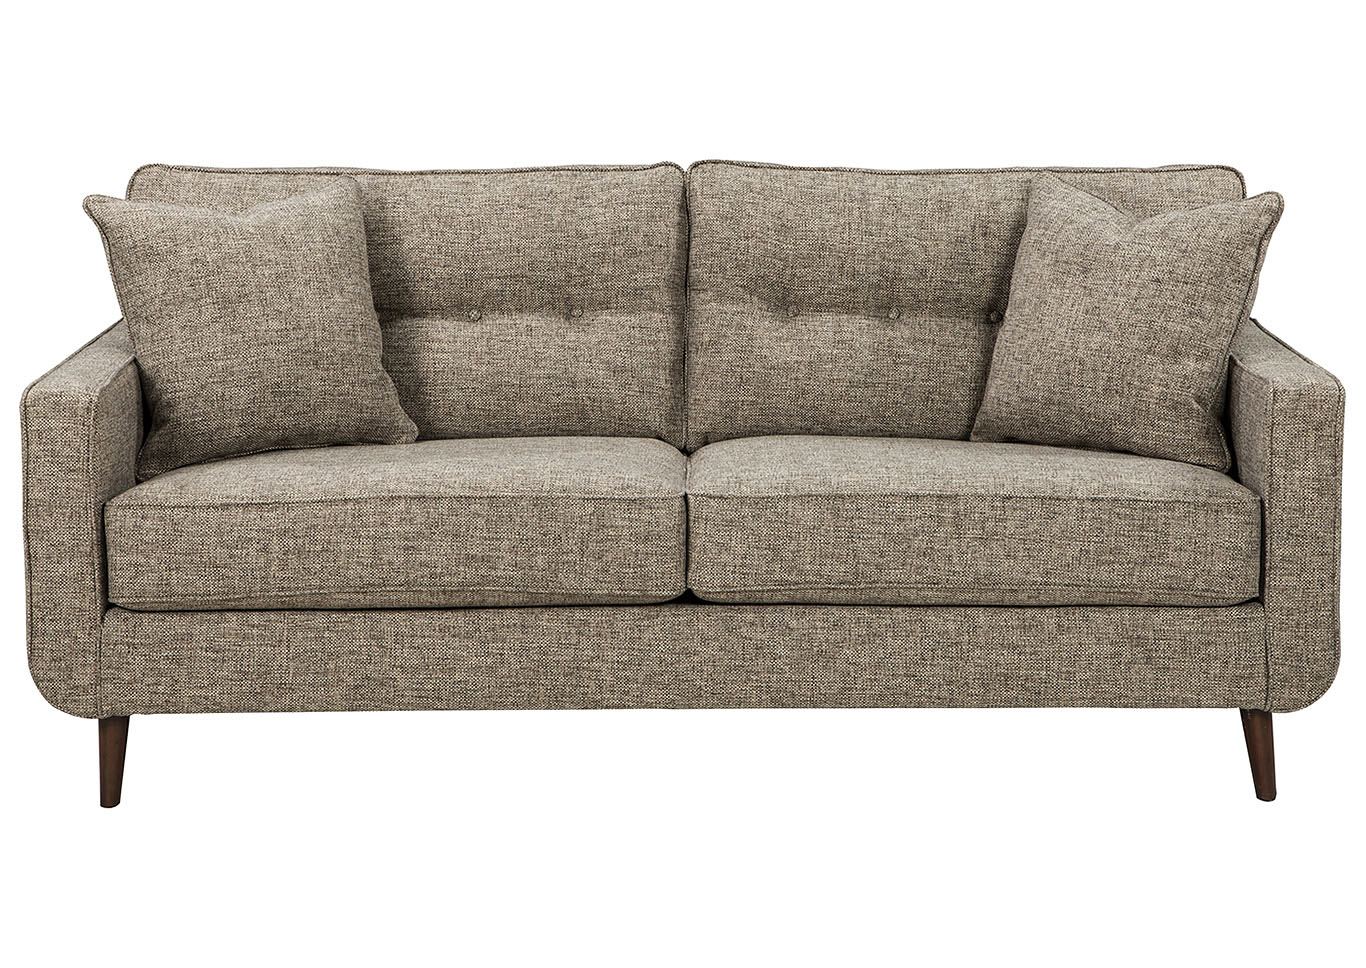 Actionwood Home Furniture Salt Lake City Ut Dahra Jute Sofa